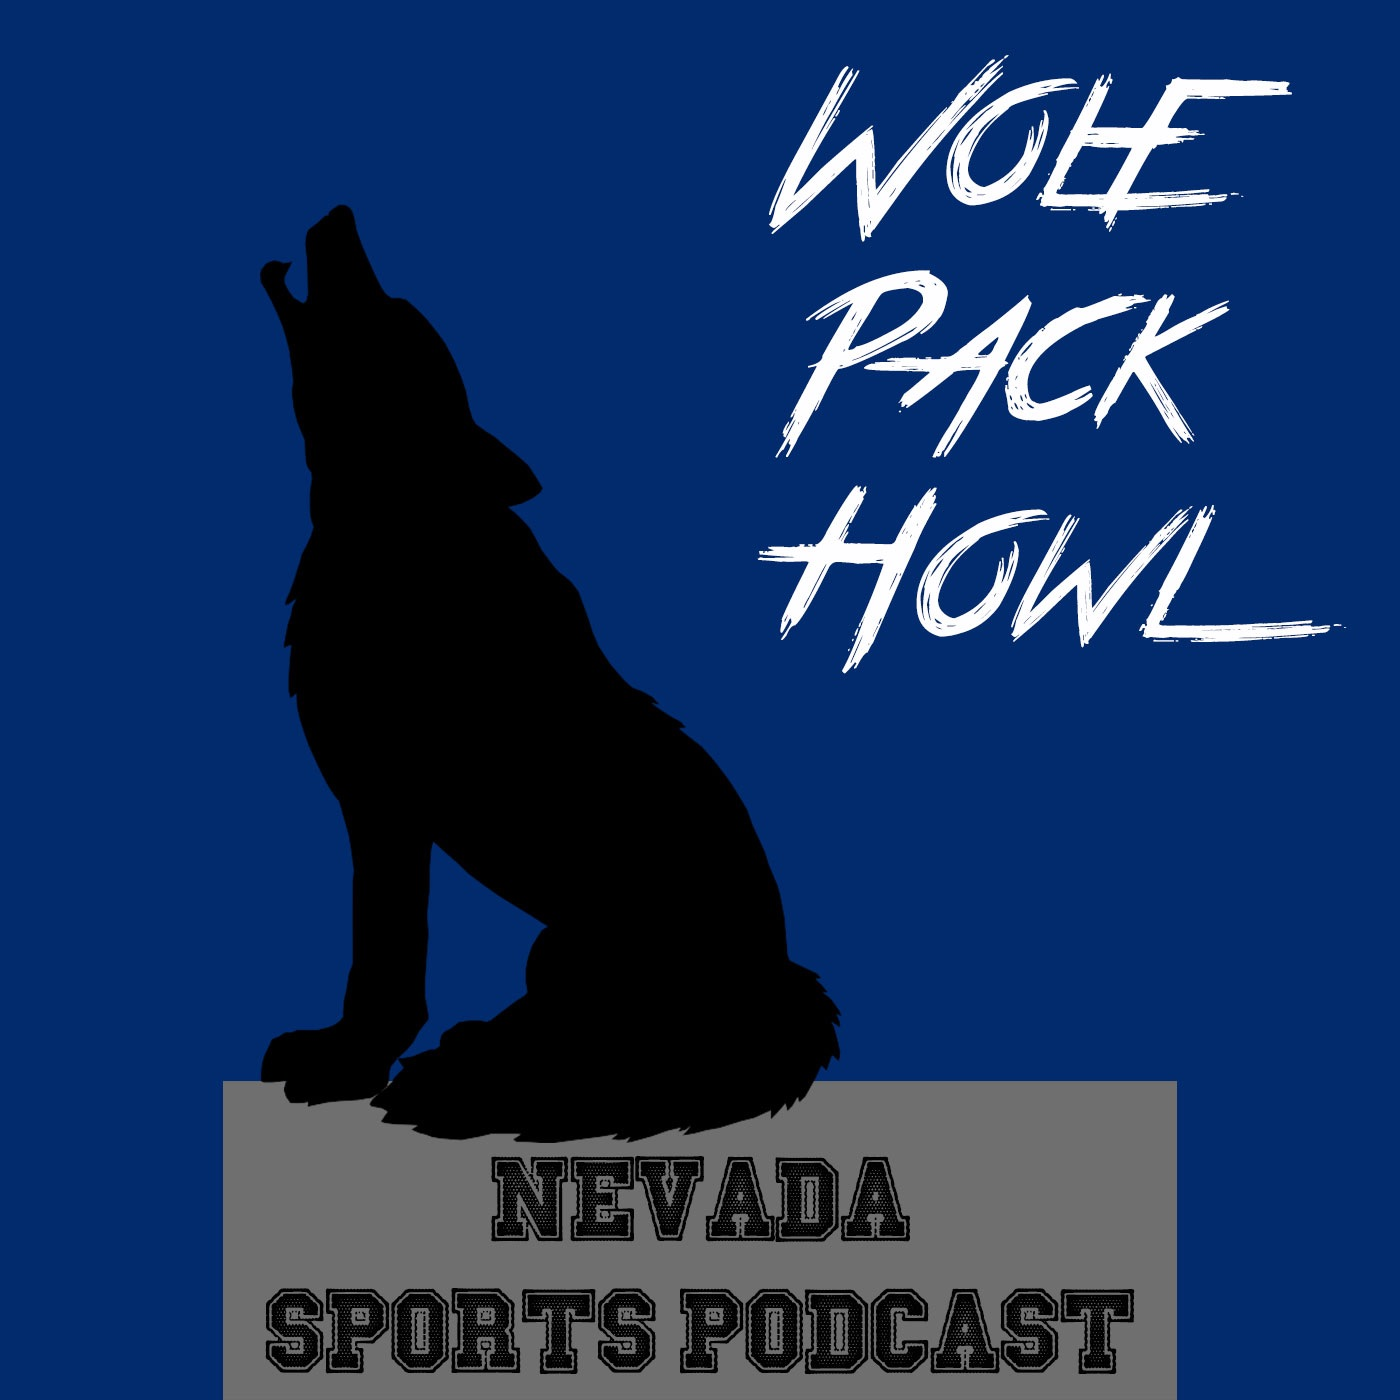 Wolf Pack Howl